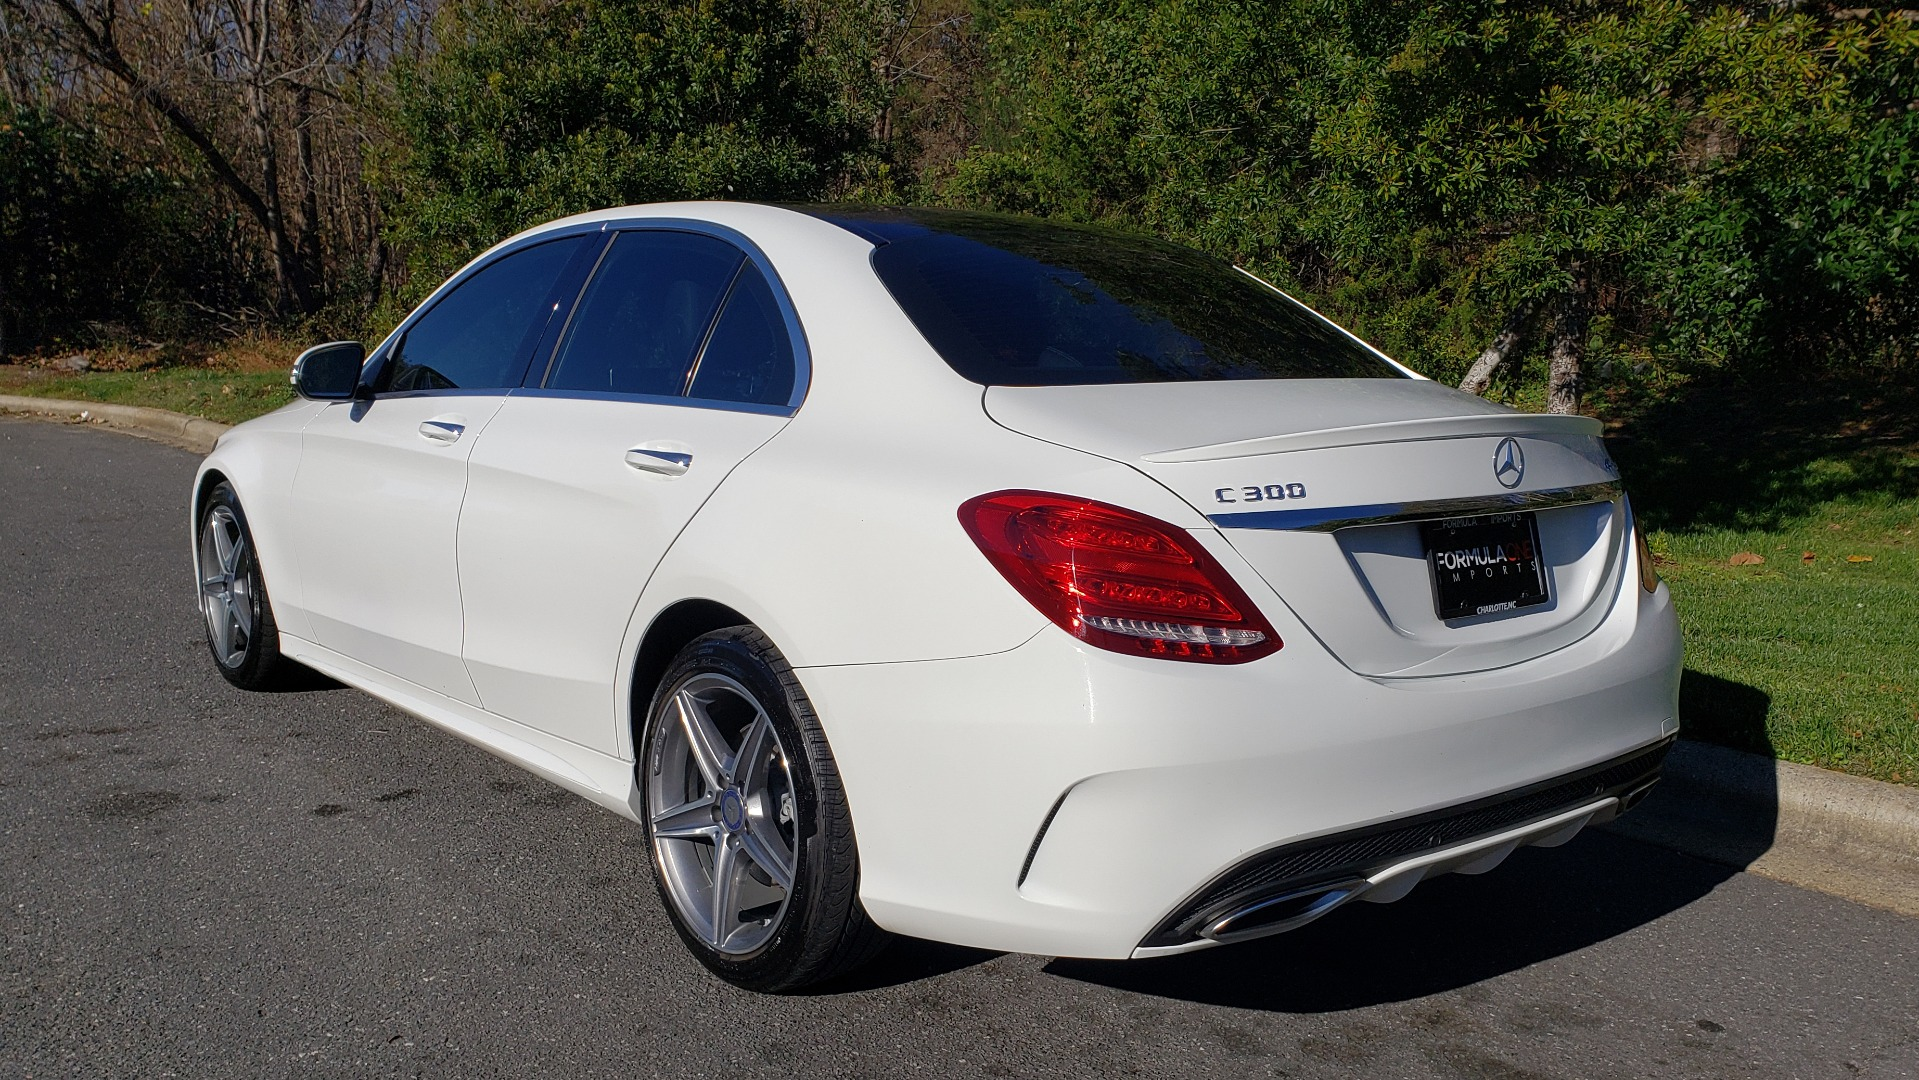 Used 2017 Mercedes-Benz C-CLASS C 300 SPORT / PREM PKG / PANO-ROOF / NAV / HTD STST / REARVIEW for sale Sold at Formula Imports in Charlotte NC 28227 3